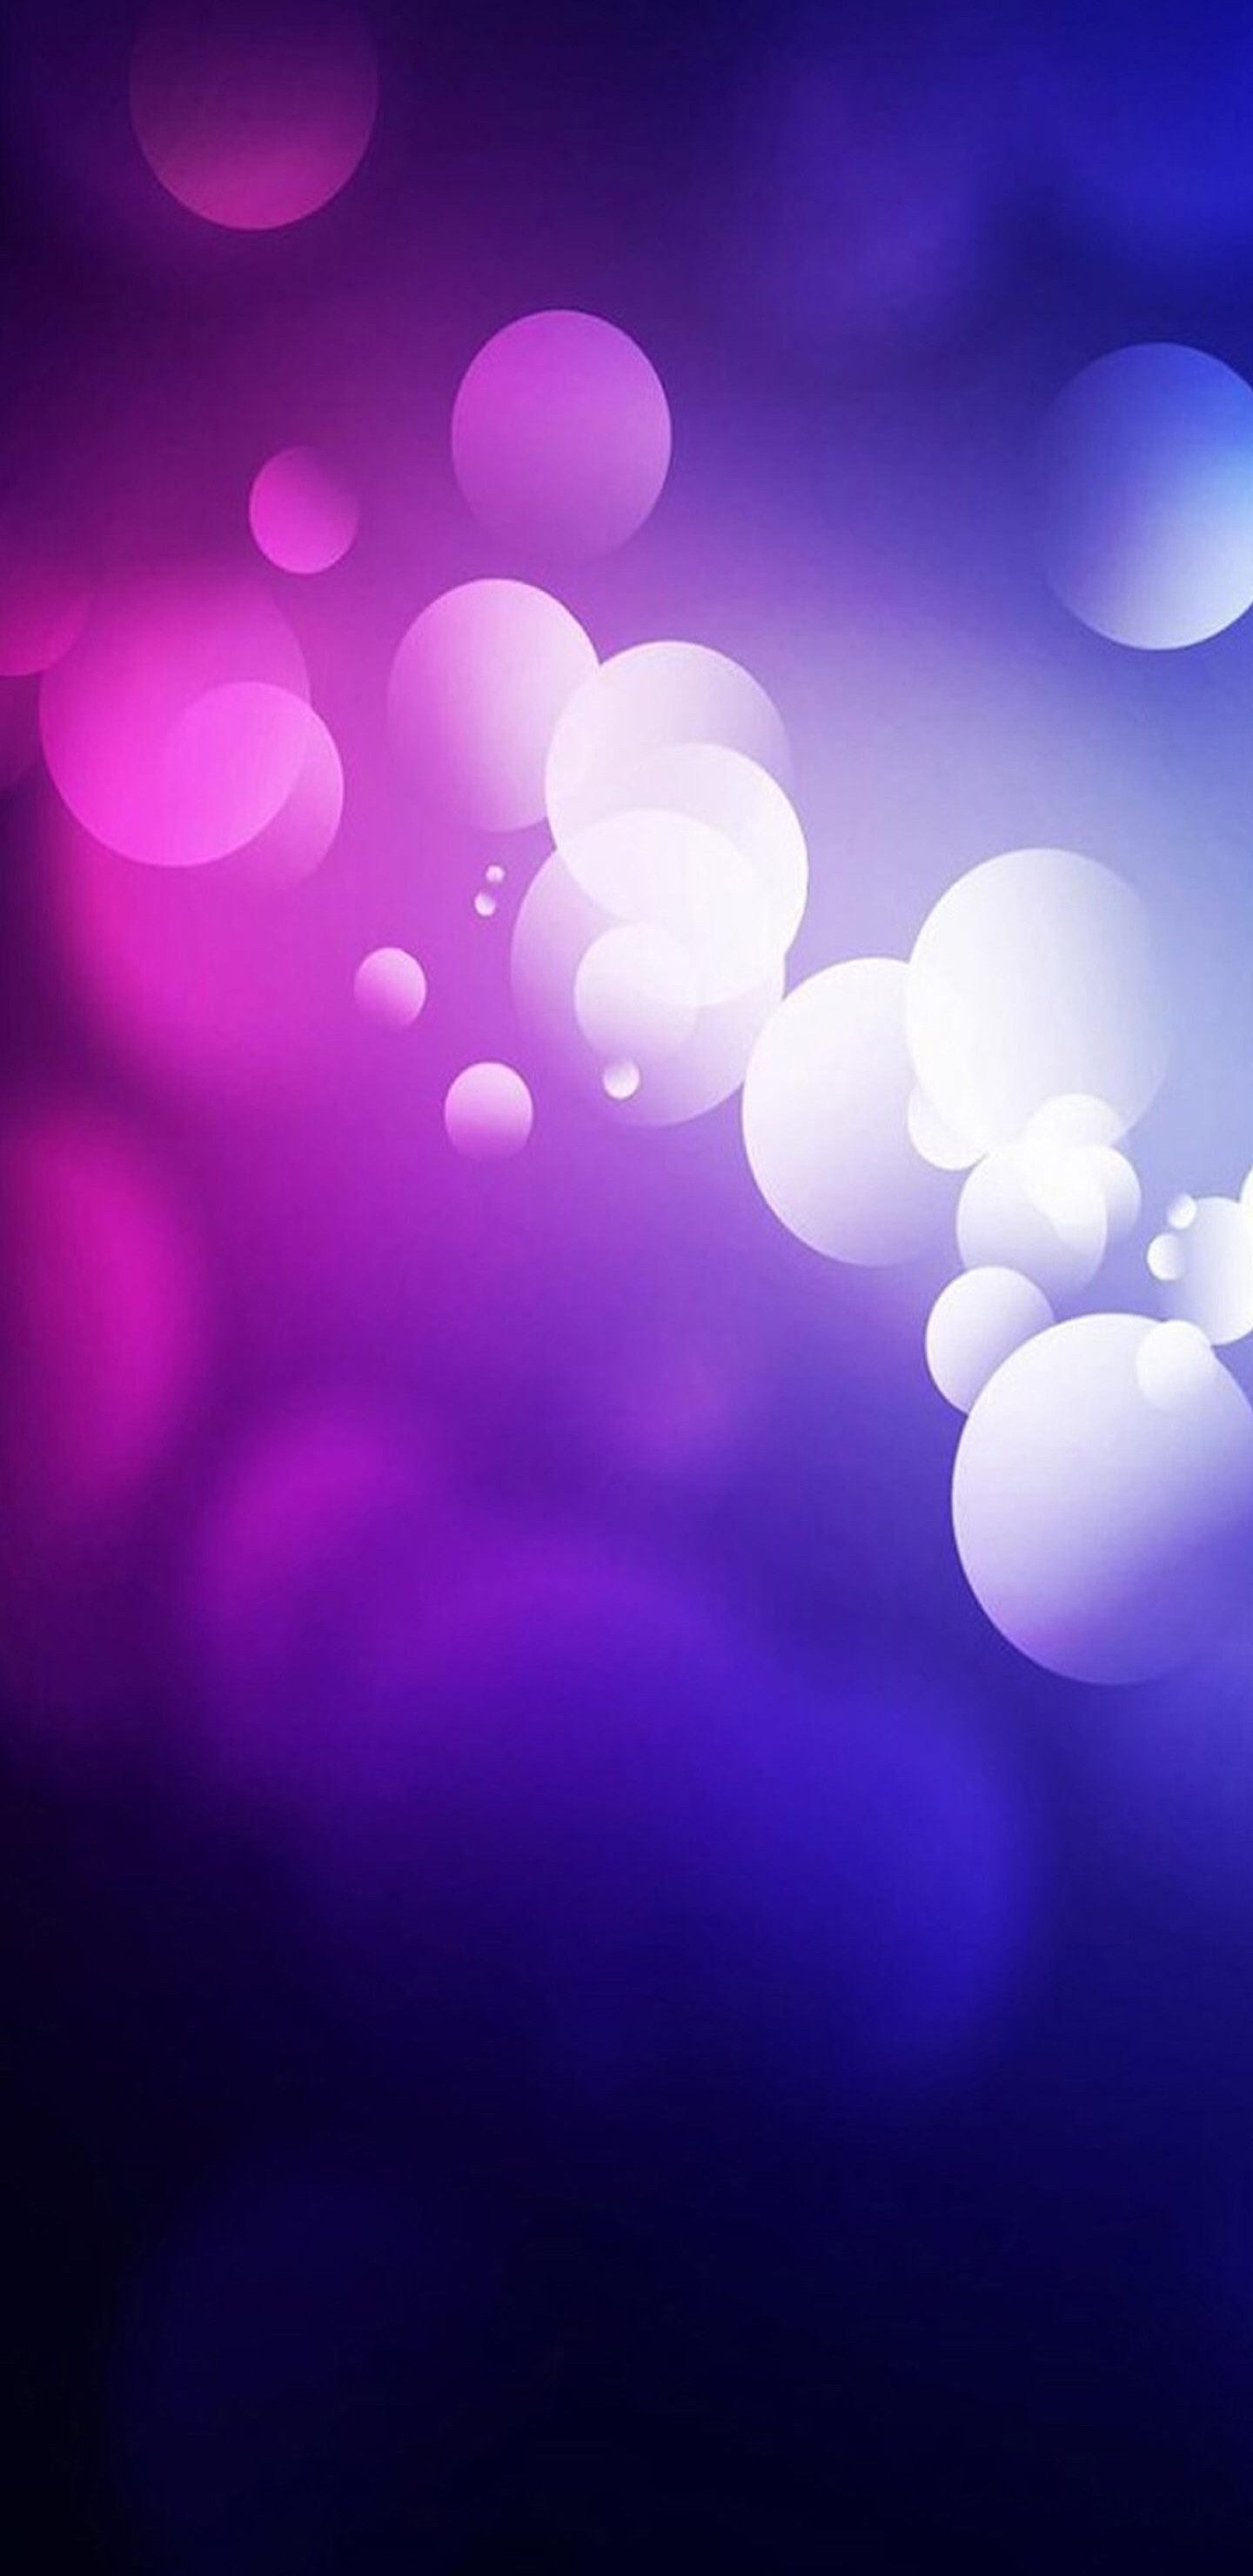 1440x2960 Blue, purple, minimal, abstract, wallpaper, galaxy, clean, beauty,